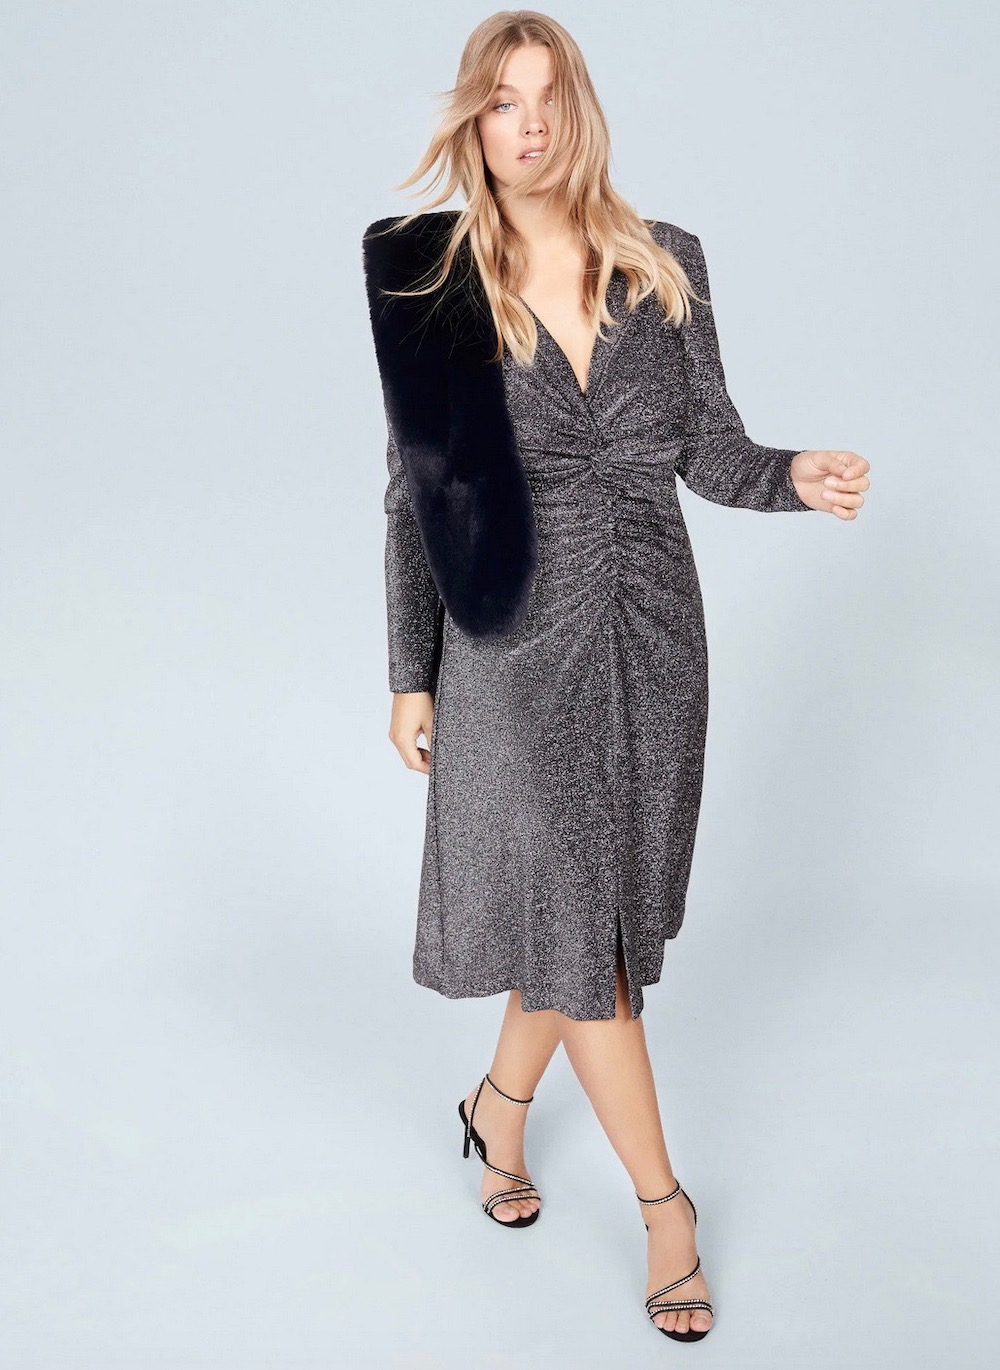 21 Perfect PlusSize New Year's Eve Dresses New years